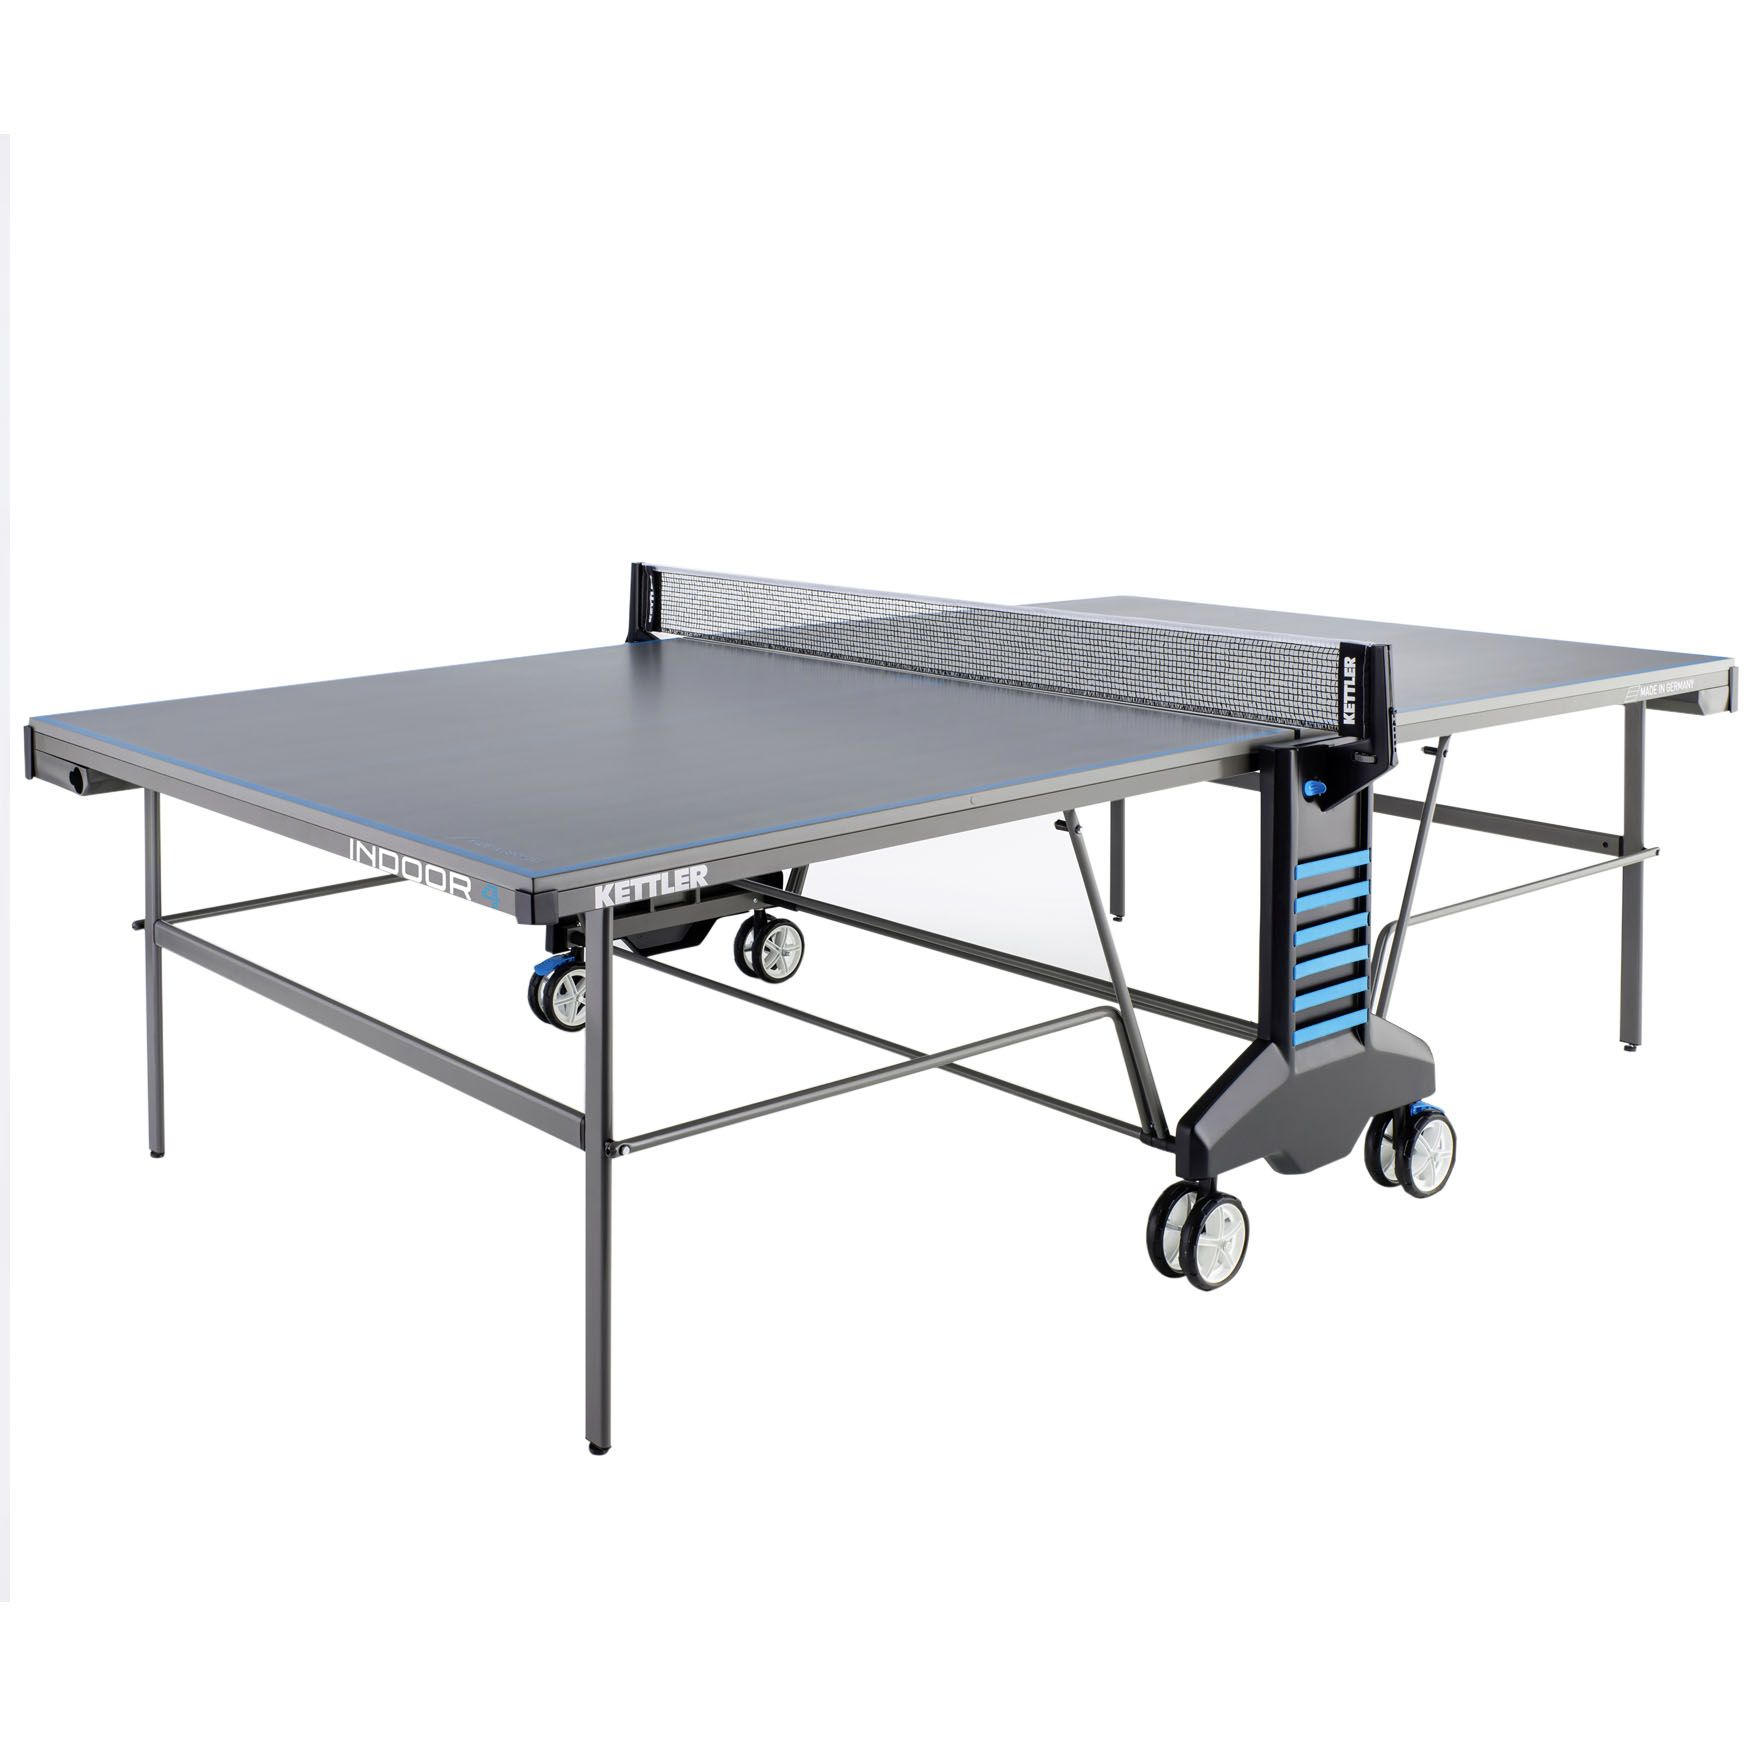 Kettler classic indoor 4 table tennis table for Table kettler